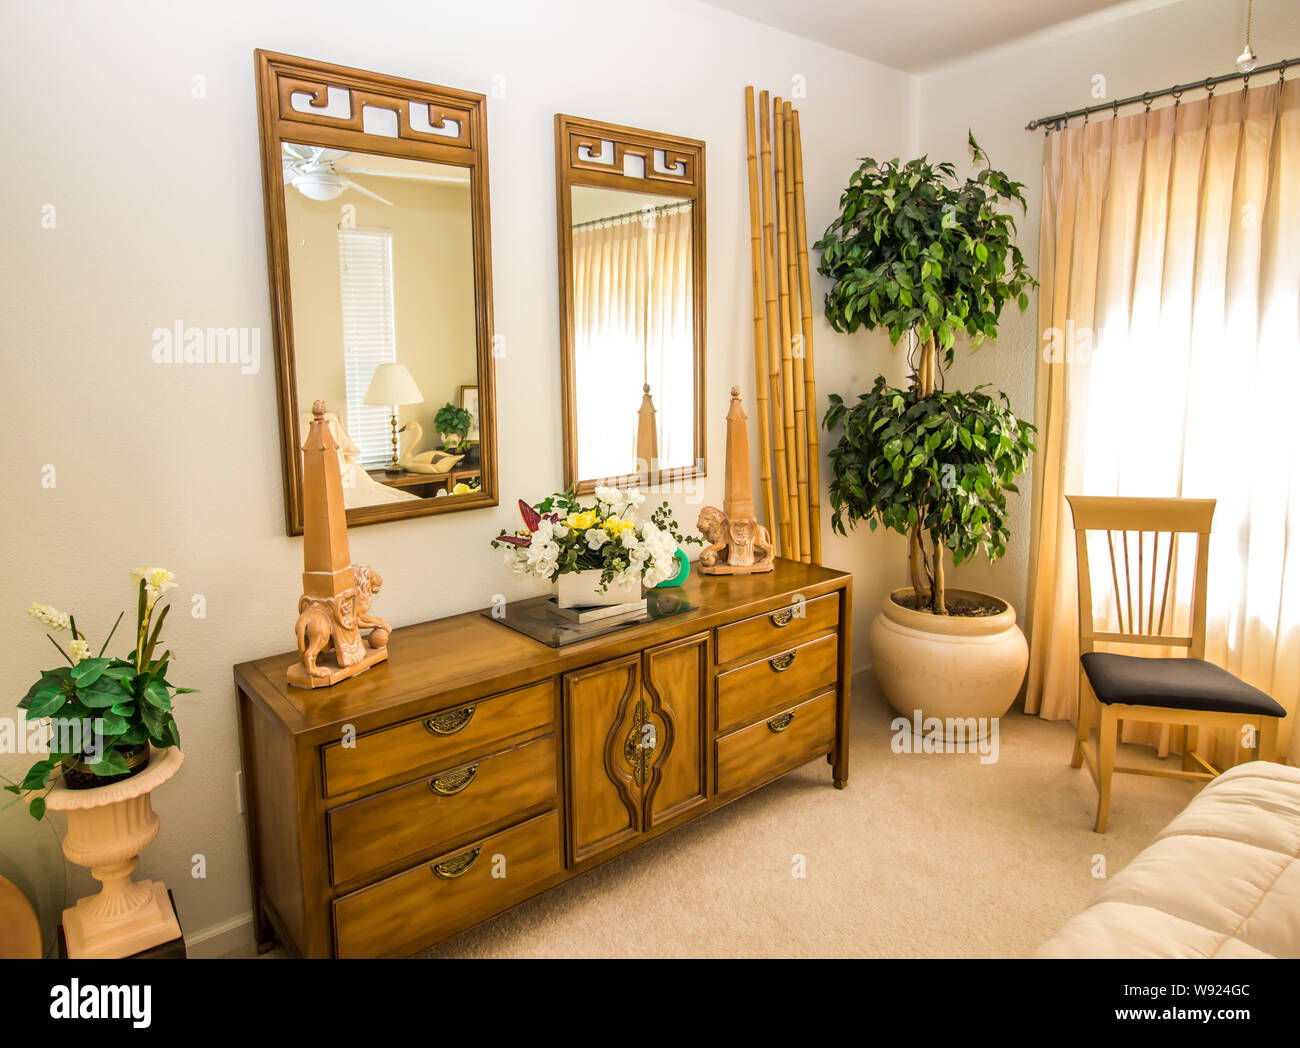 Bamboo Curtains Stockfotos & Bamboo Curtains Bilder - Alamy